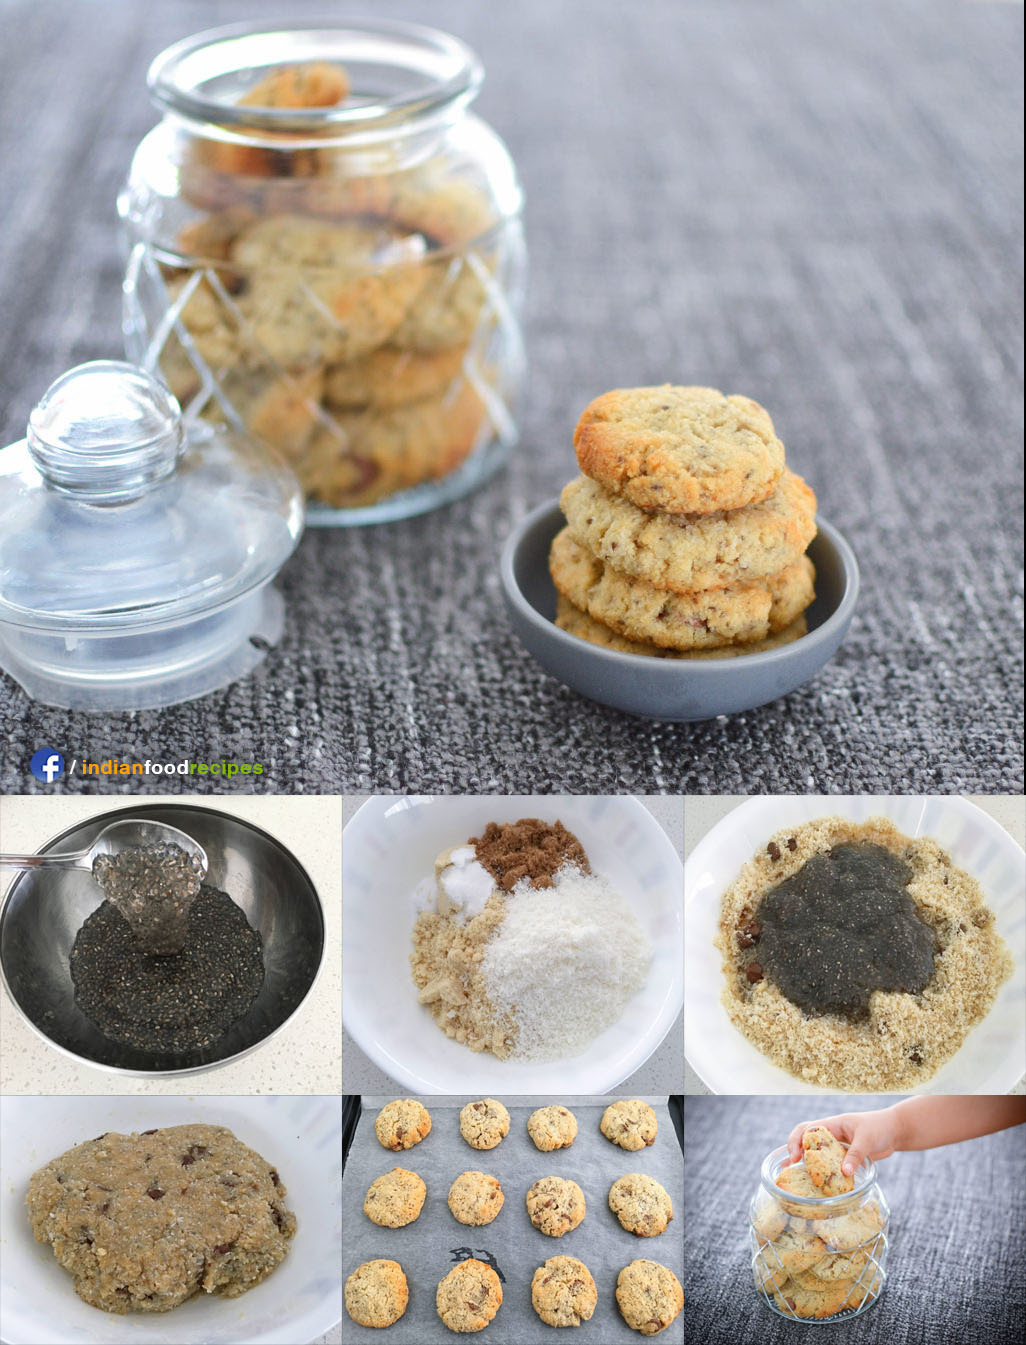 Almond Coconut Cookies recipe step by step pictures